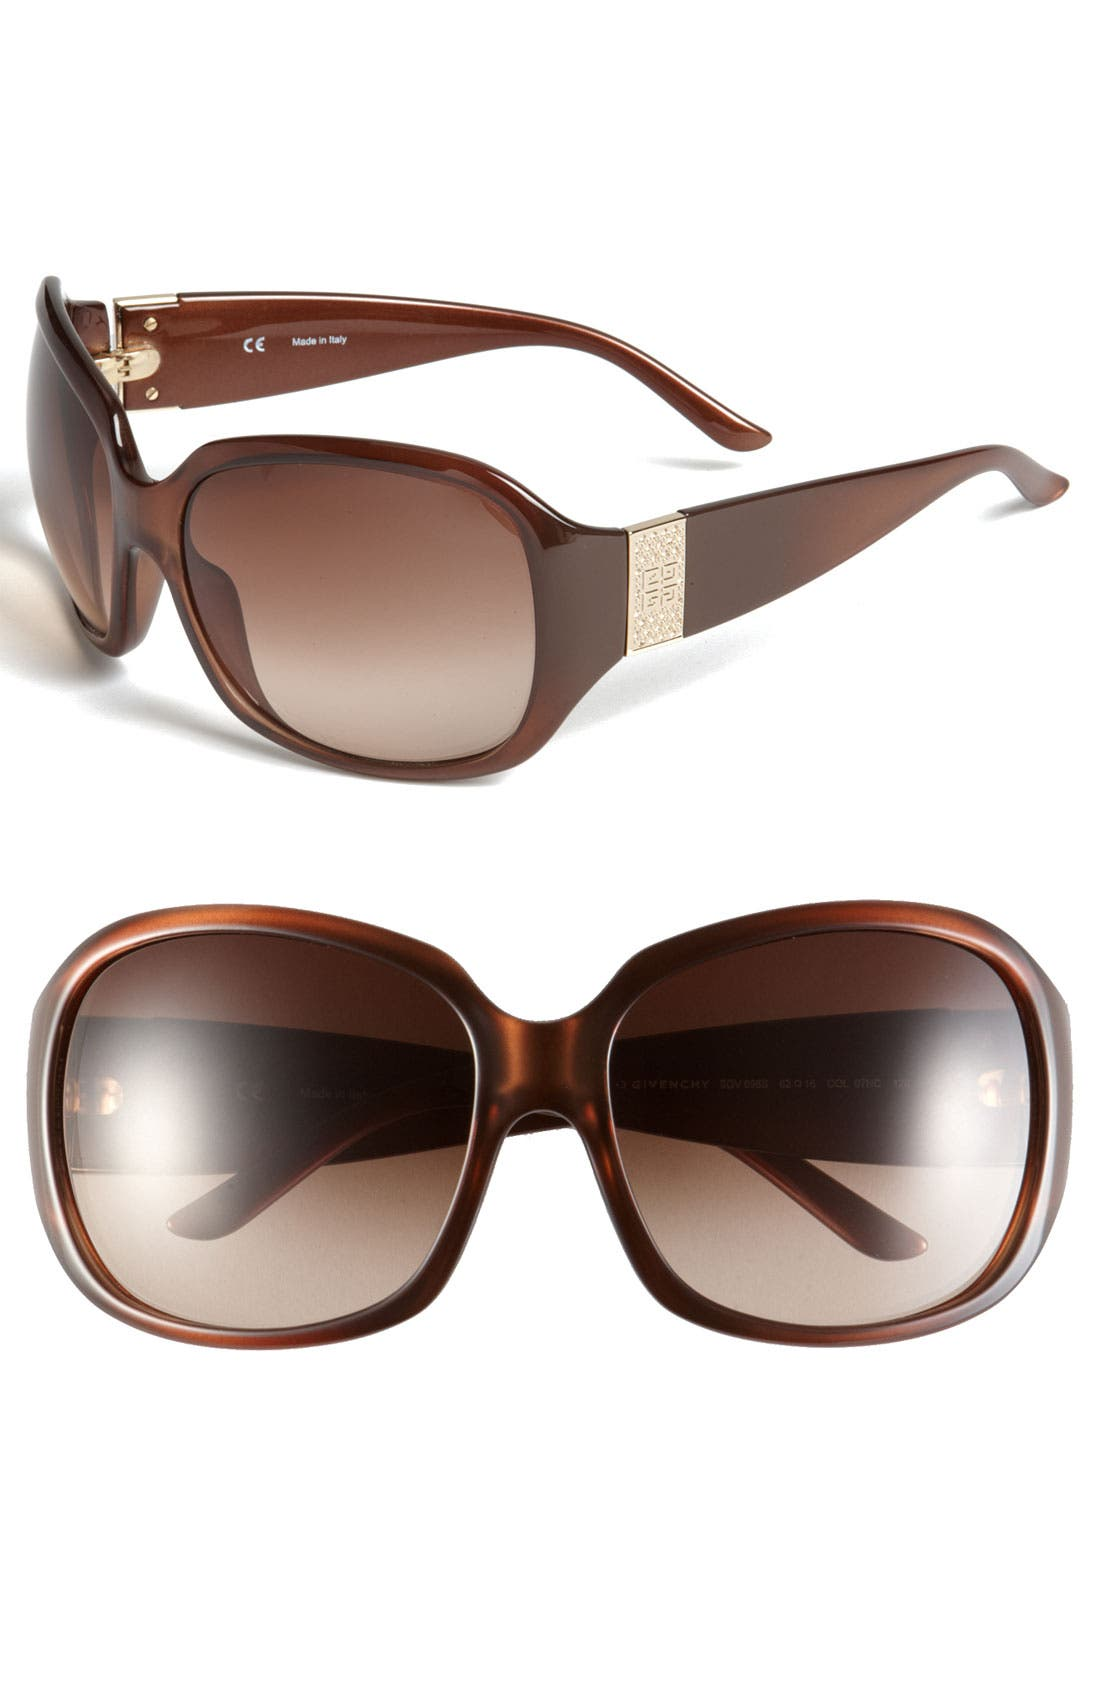 Main Image - Givenchy Sunglasses